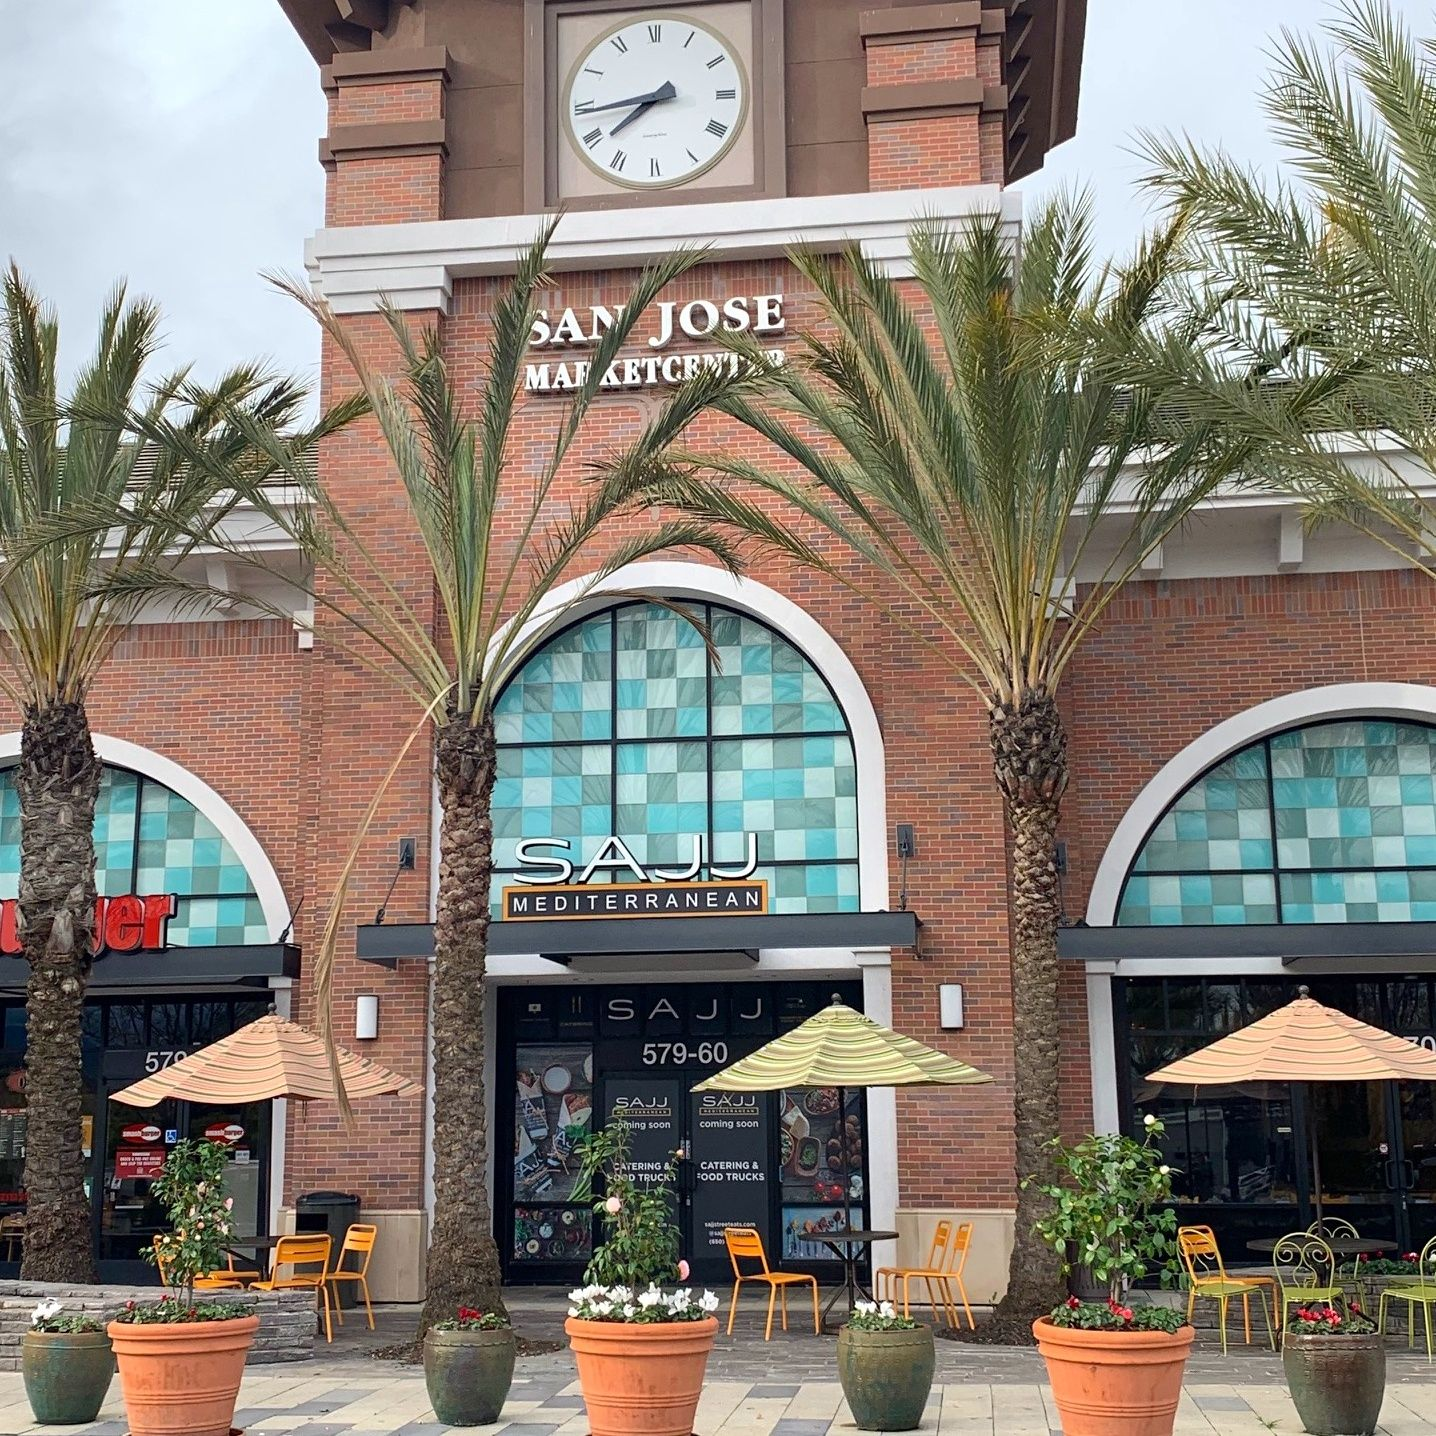 SAJJ Mediterranean, the Mediterranean fast casual concept known for fresh and customizable eats, will celebrate the Grand Opening of its newest restaurant in Downtown San Jose on Friday, September 20, with special deals and promotions. The opening marks SAJJ's 10th location, a milestone which will be celebrated with free samples of Chocolate Hummus & Cinnamon Chips at all locations on September 20.